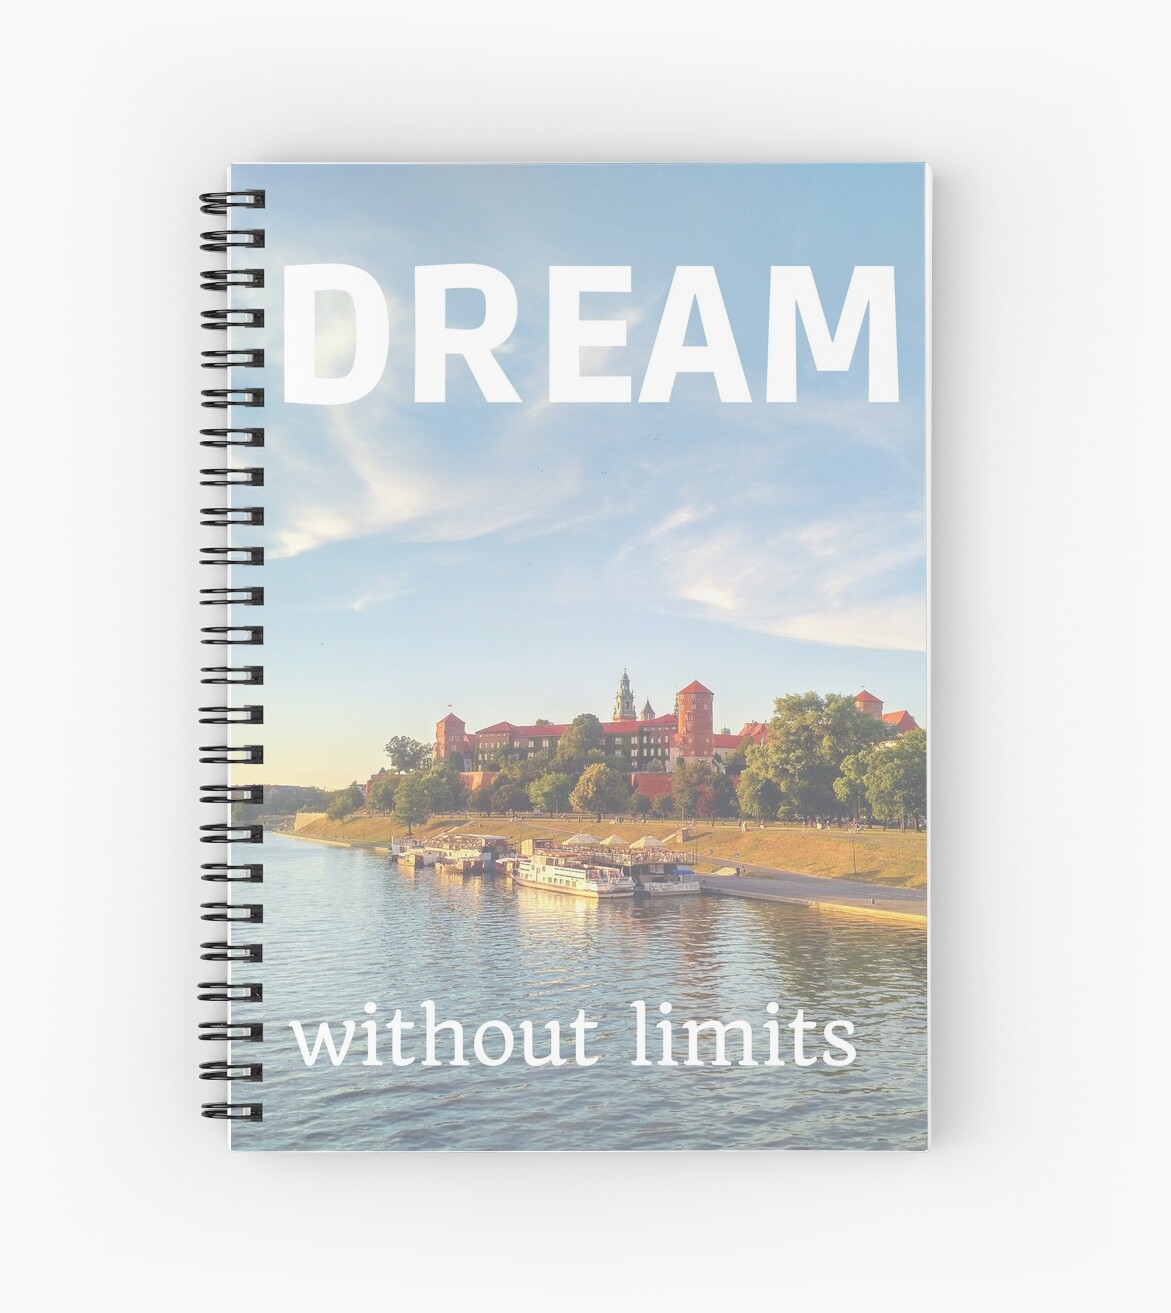 DREAM without limits by BrightNomad